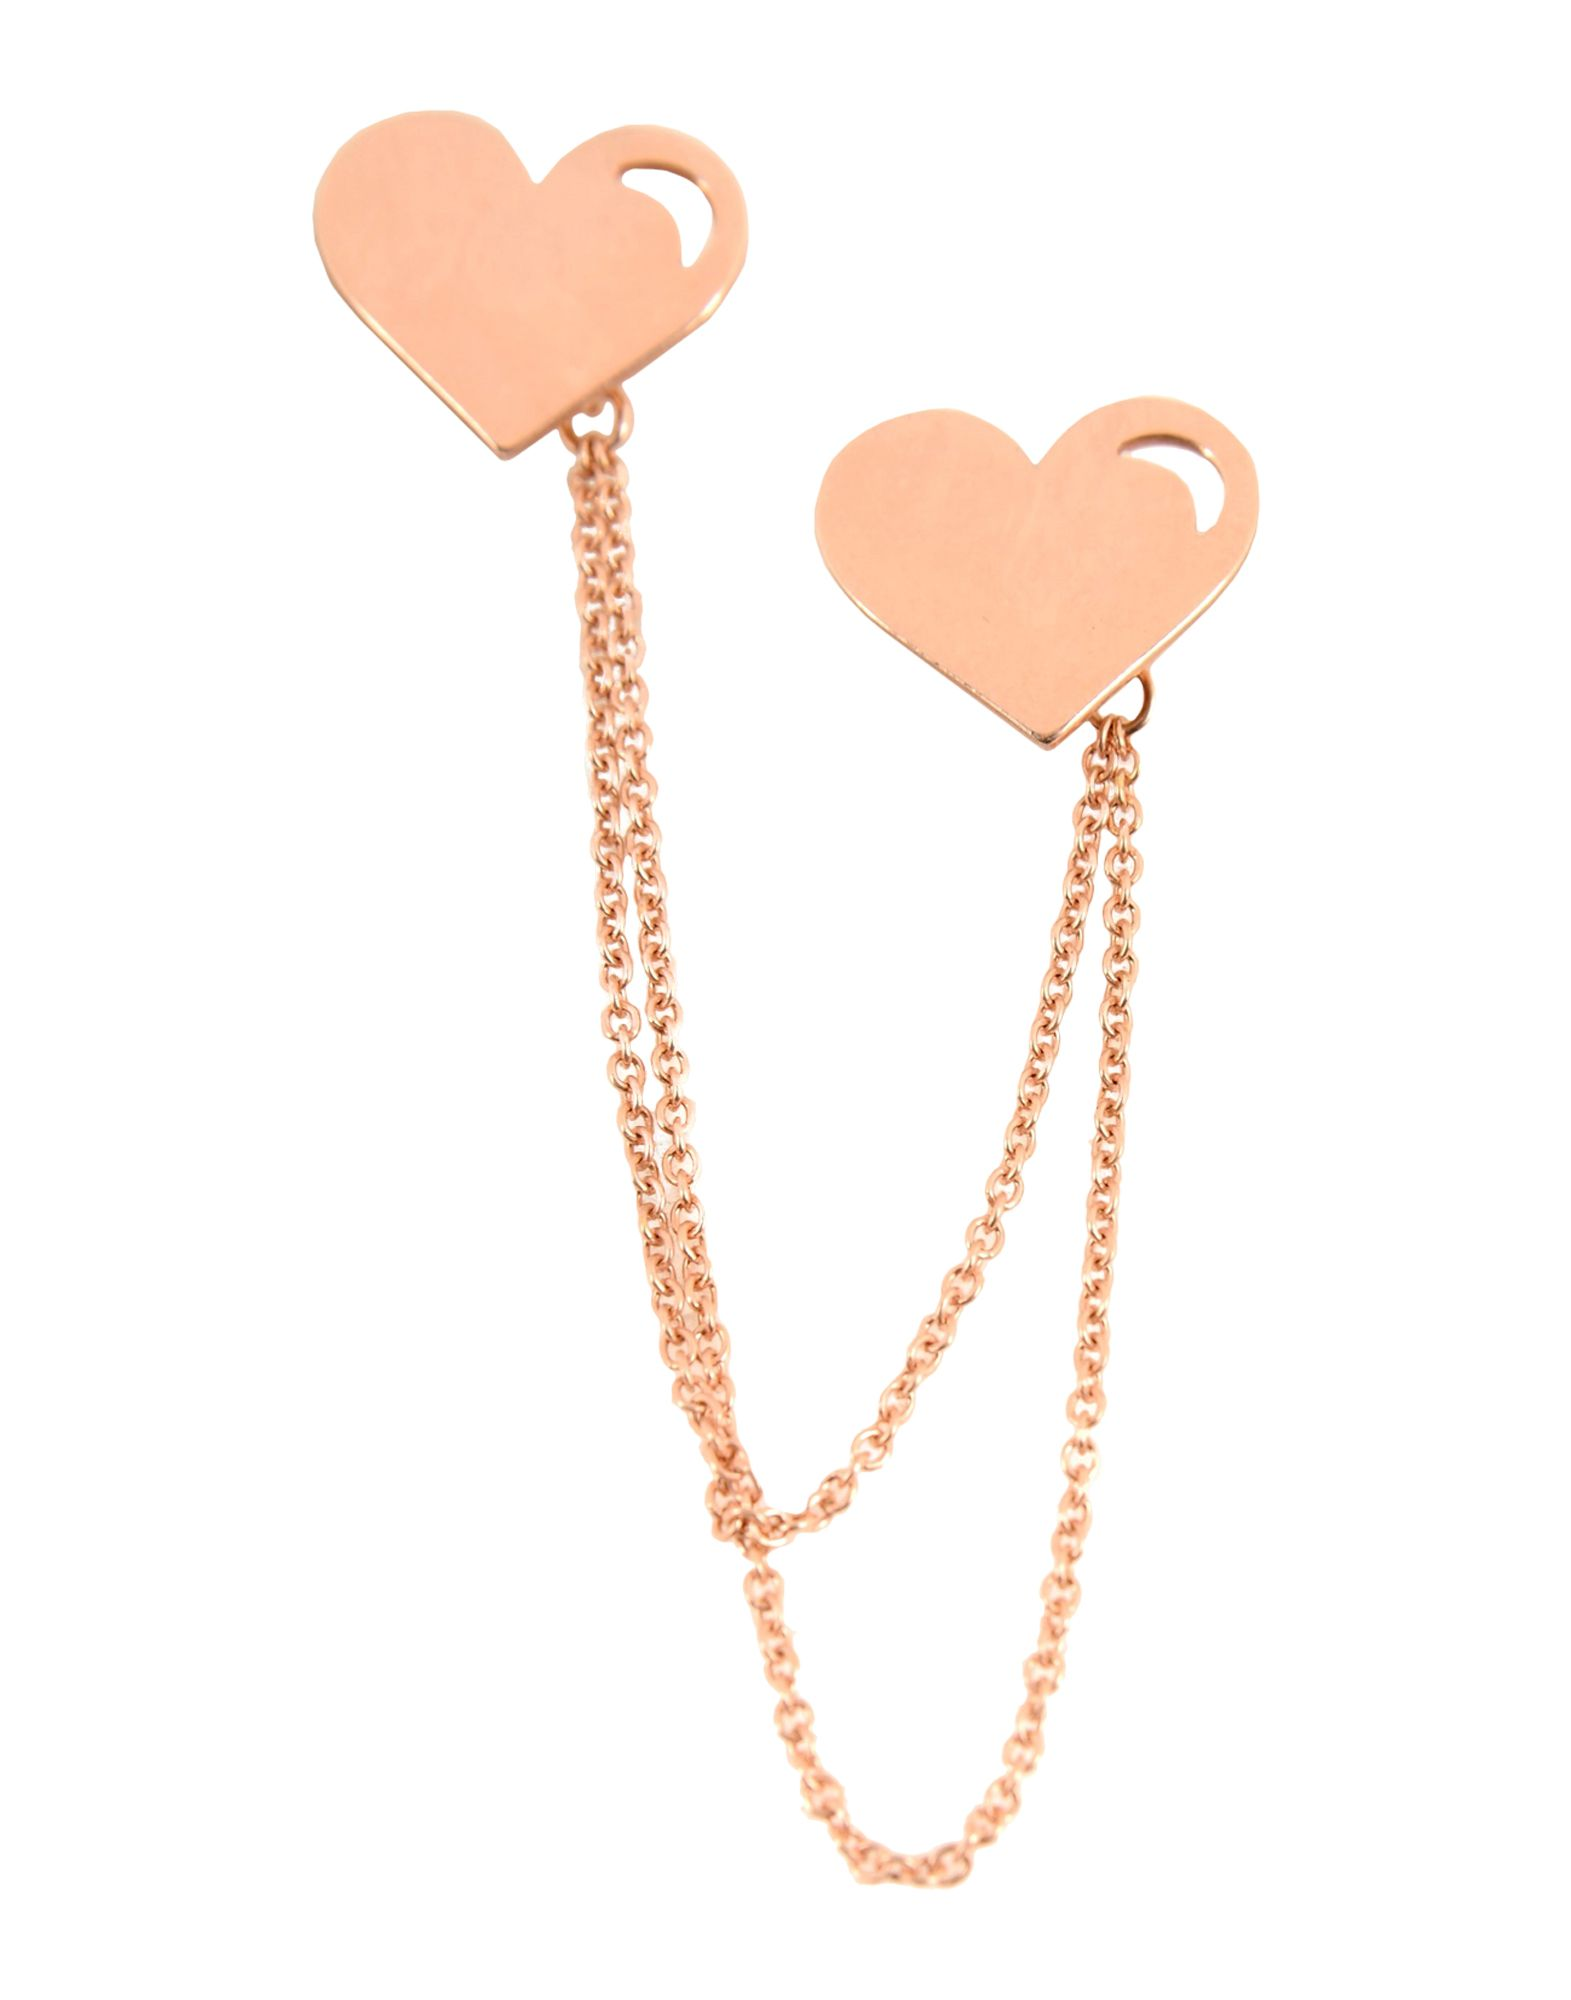 Orecchino First People First Earcuff Pure Heart With Chain - Donna - Acquista online su